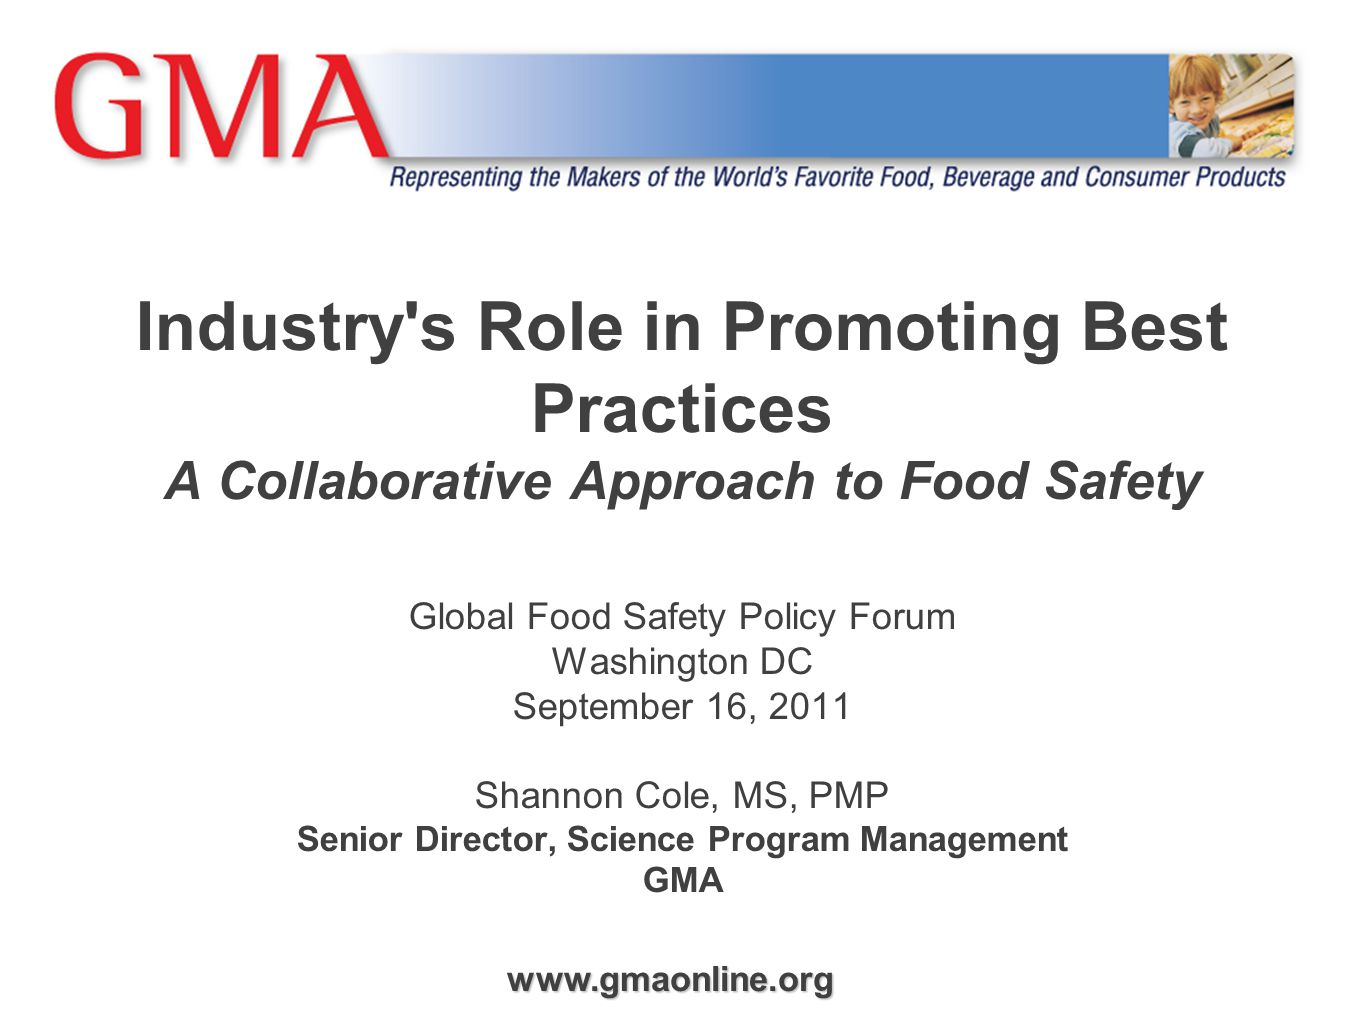 www.gmaonline.org Industry s Role in Promoting Best Practices A Collaborative Approach to Food Safety Global Food Safety Policy Forum Washington DC September 16, 2011 Shannon Cole, MS, PMP Senior Director, Science Program Management GMA